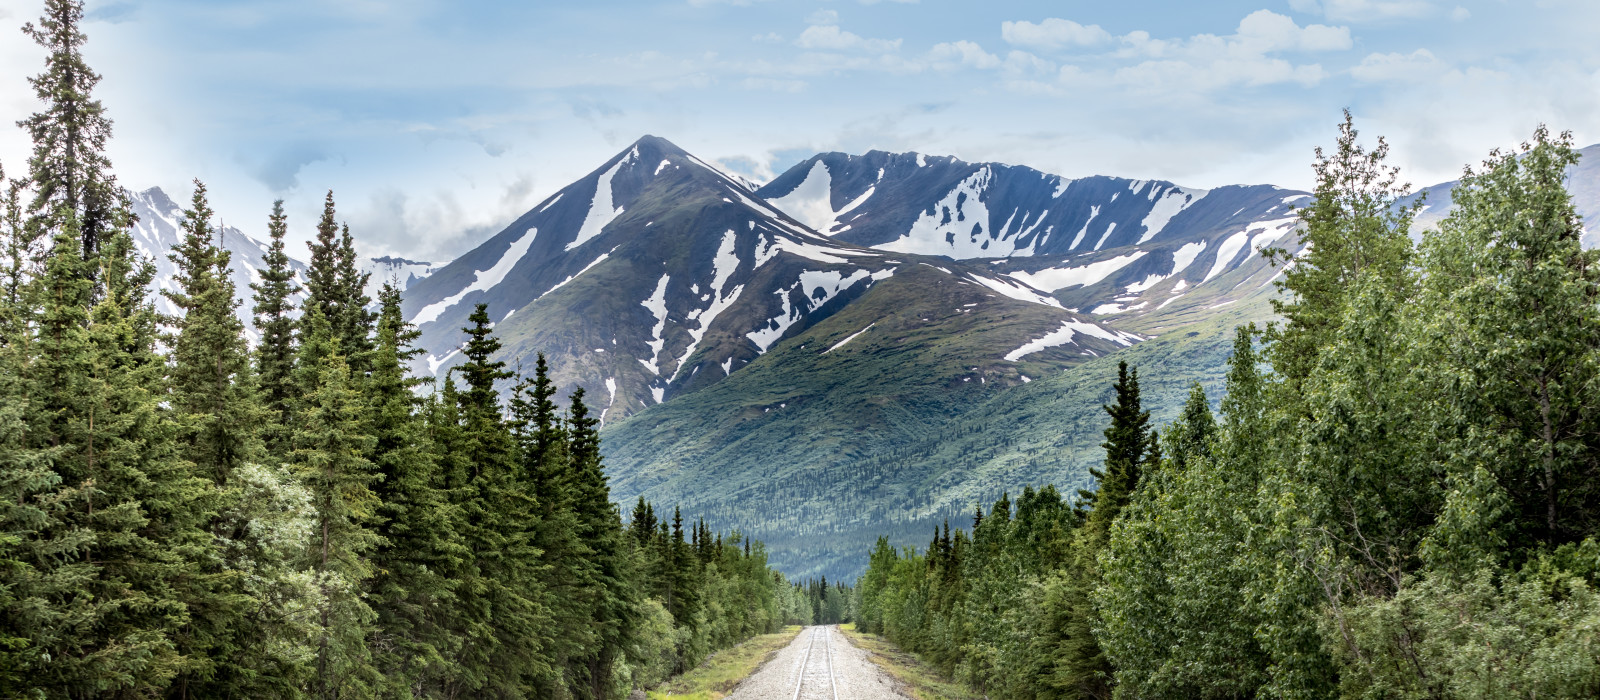 Road Trip: Best of Yukon and Alaska Tour Trip 1